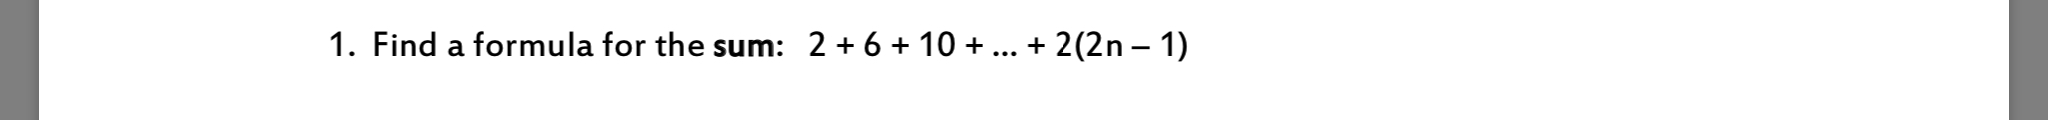 1. Find a formula for the sum: 2+ 6+ 10 ... + 2(2n - 1)